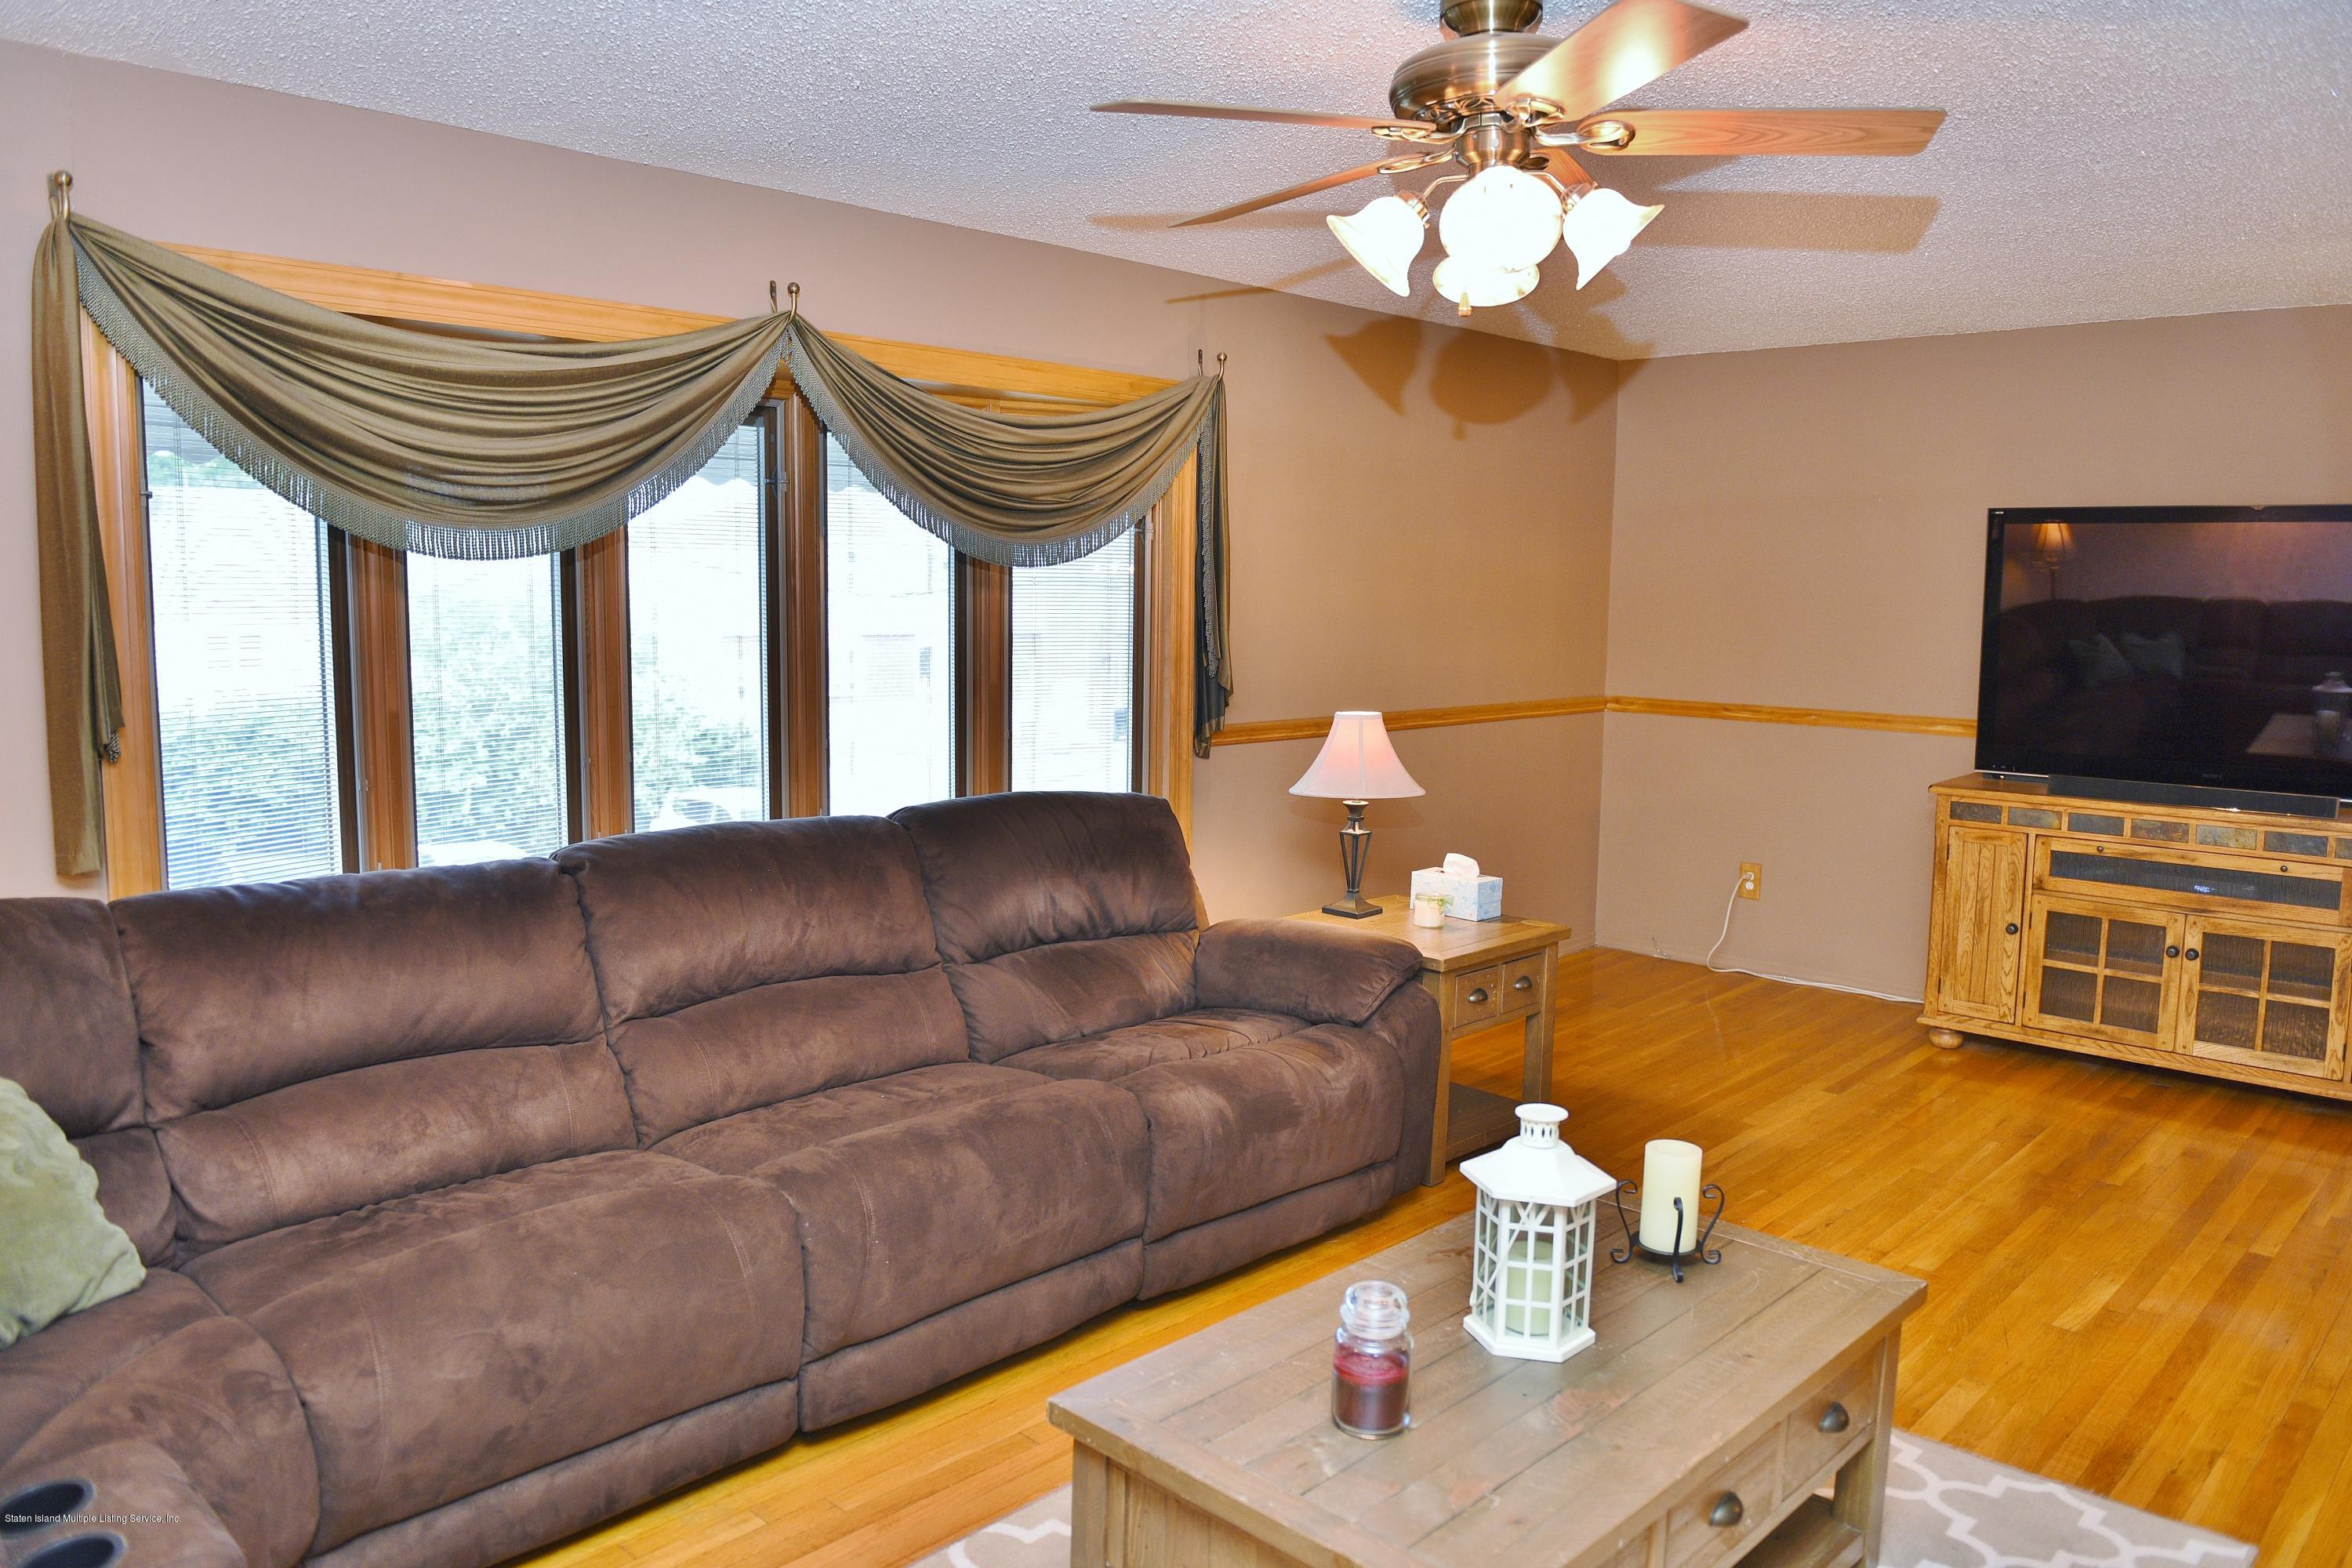 Single Family - Detached 41 Prices Lane  Staten Island, NY 10314, MLS-1129754-5